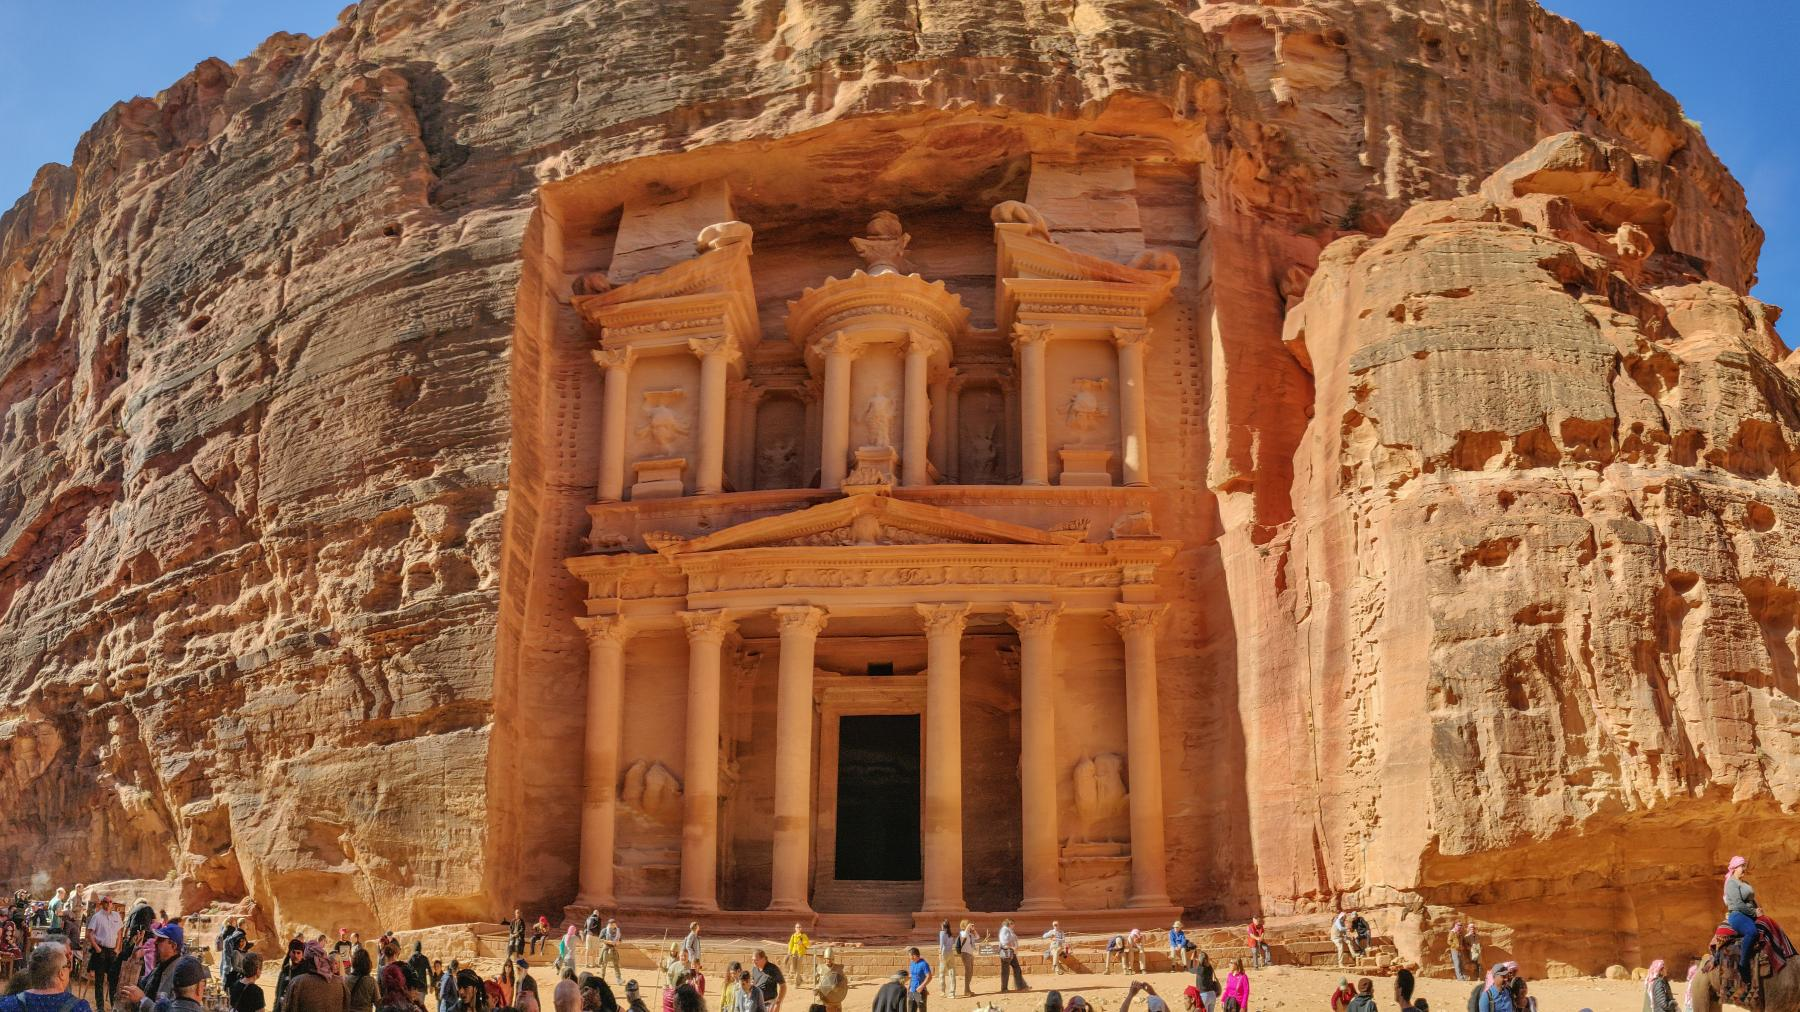 The ancients' adventure to Jordan and the Holy Land starting at Amman, Jordan